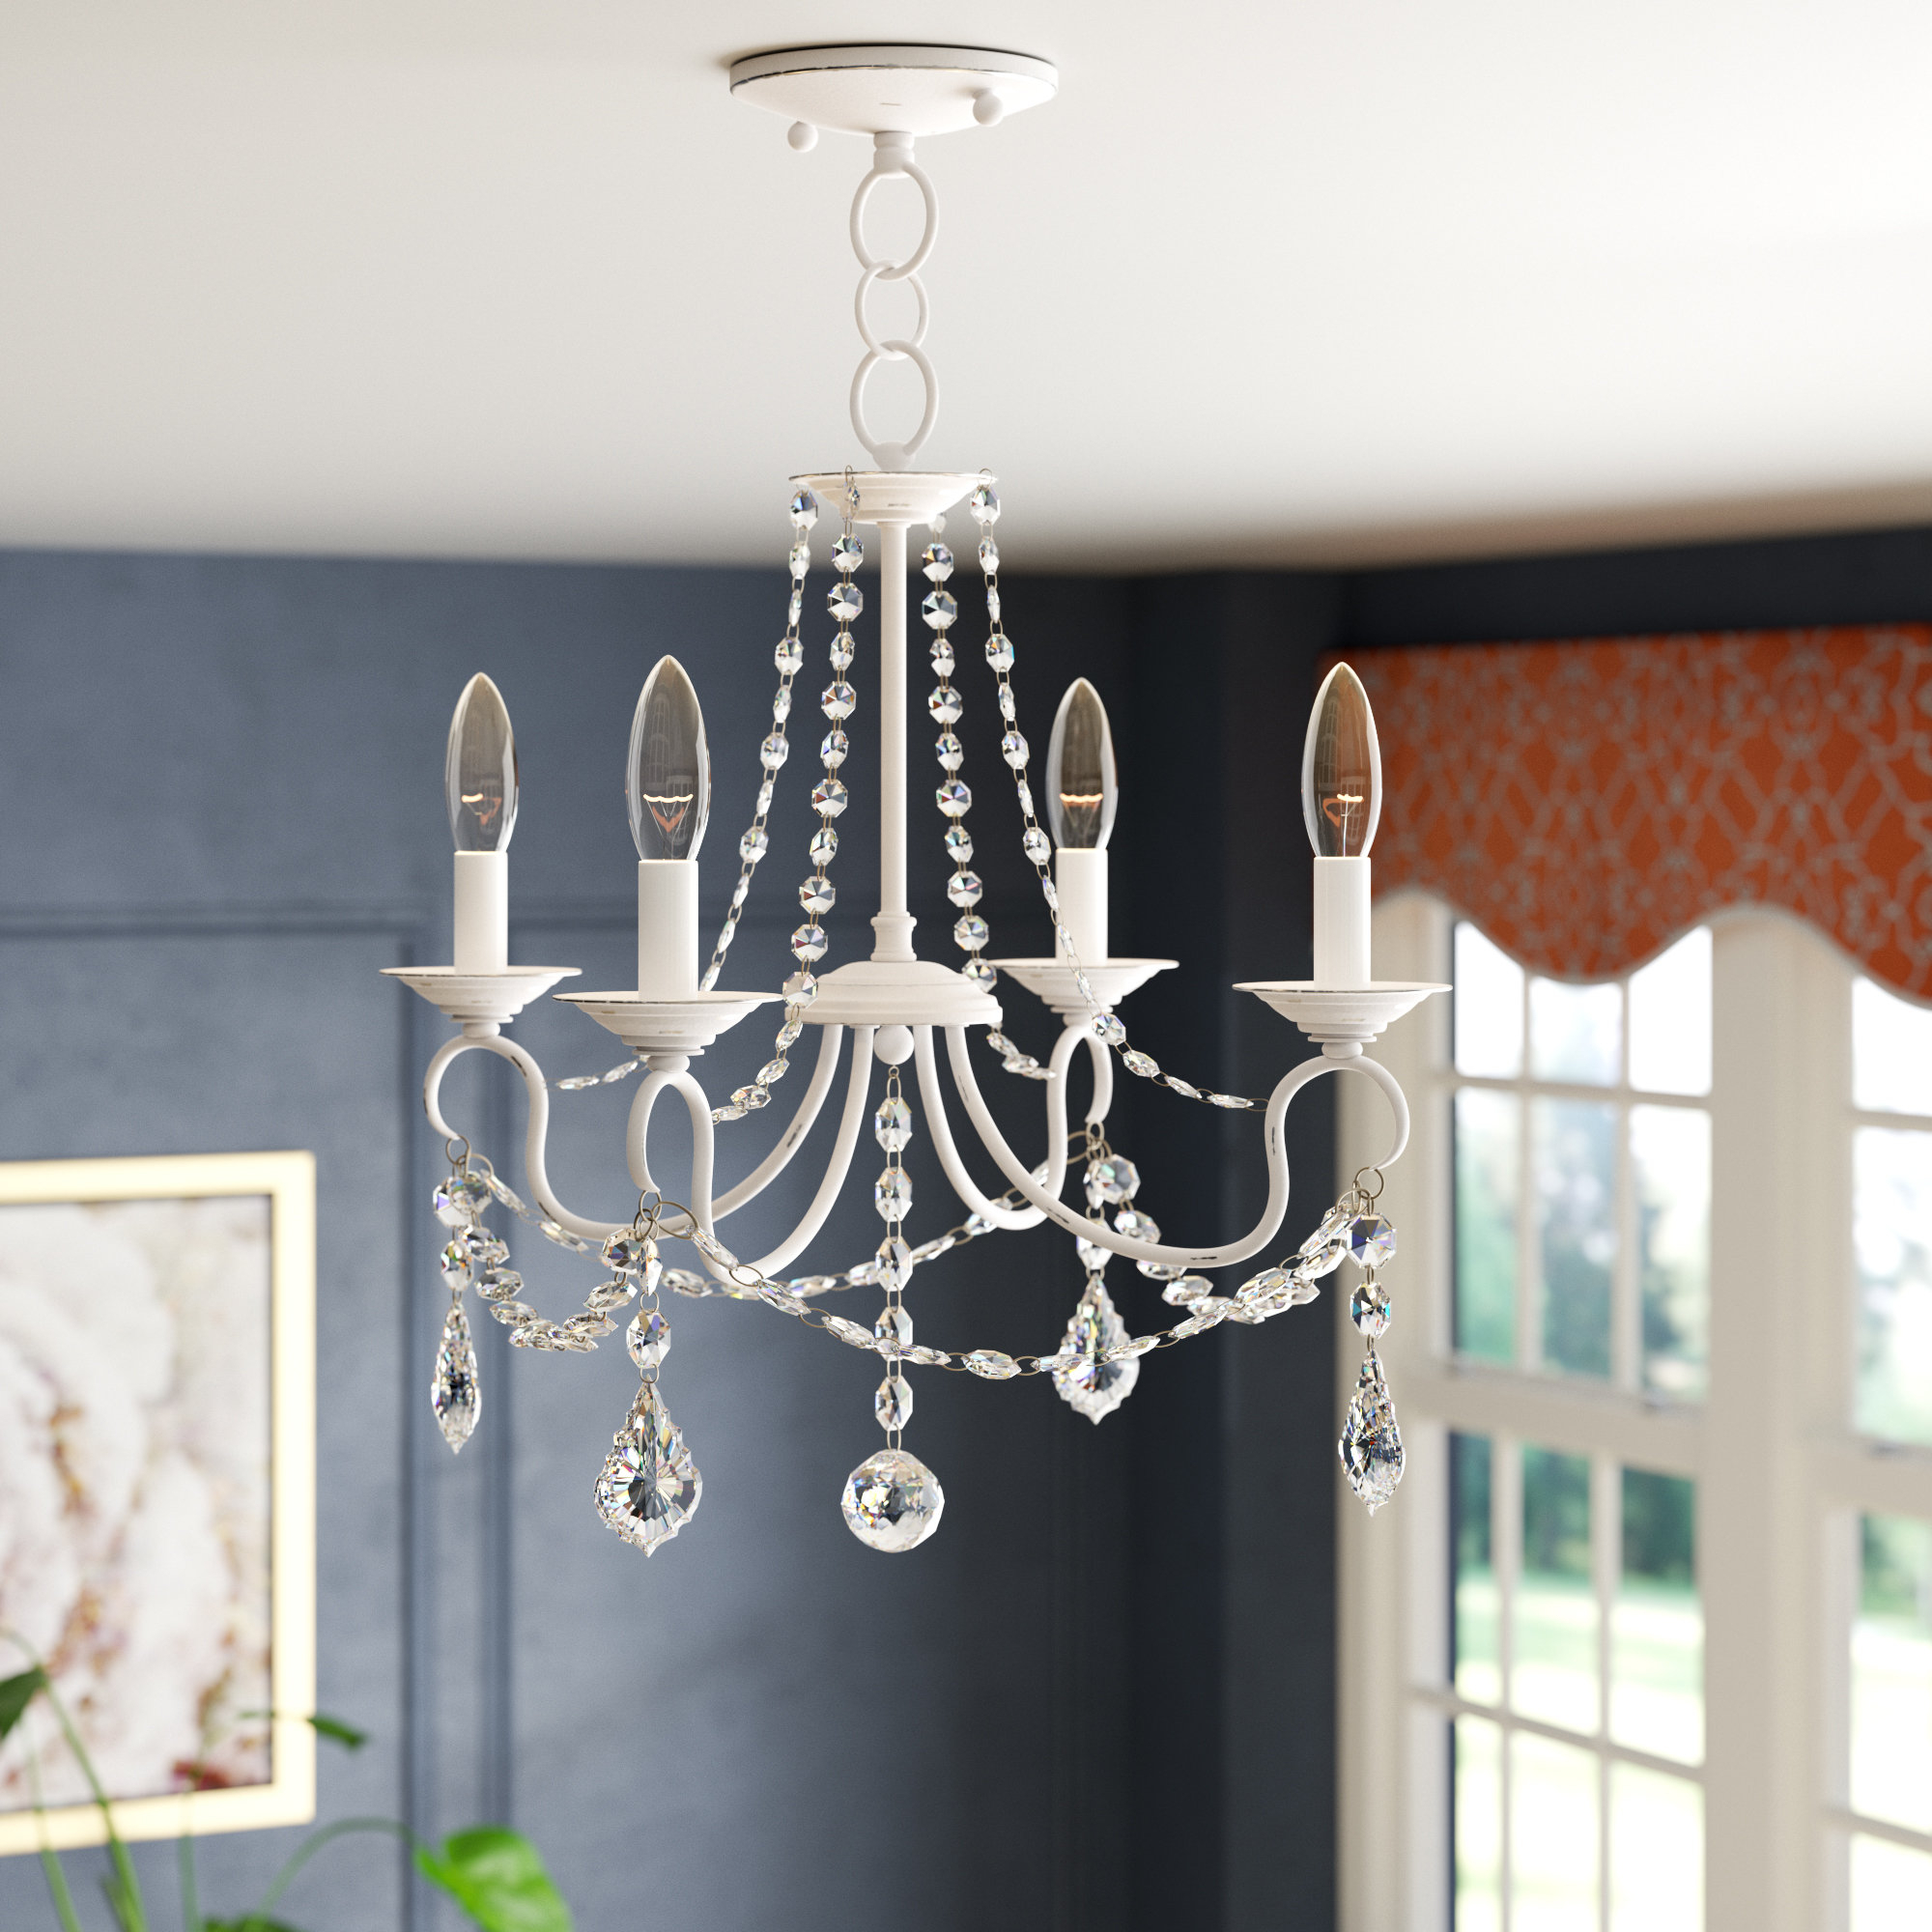 Aldora 4 Light Candle Style Chandeliers For Most Current Devana 4 Light Candle Style Chandelier (Gallery 10 of 20)